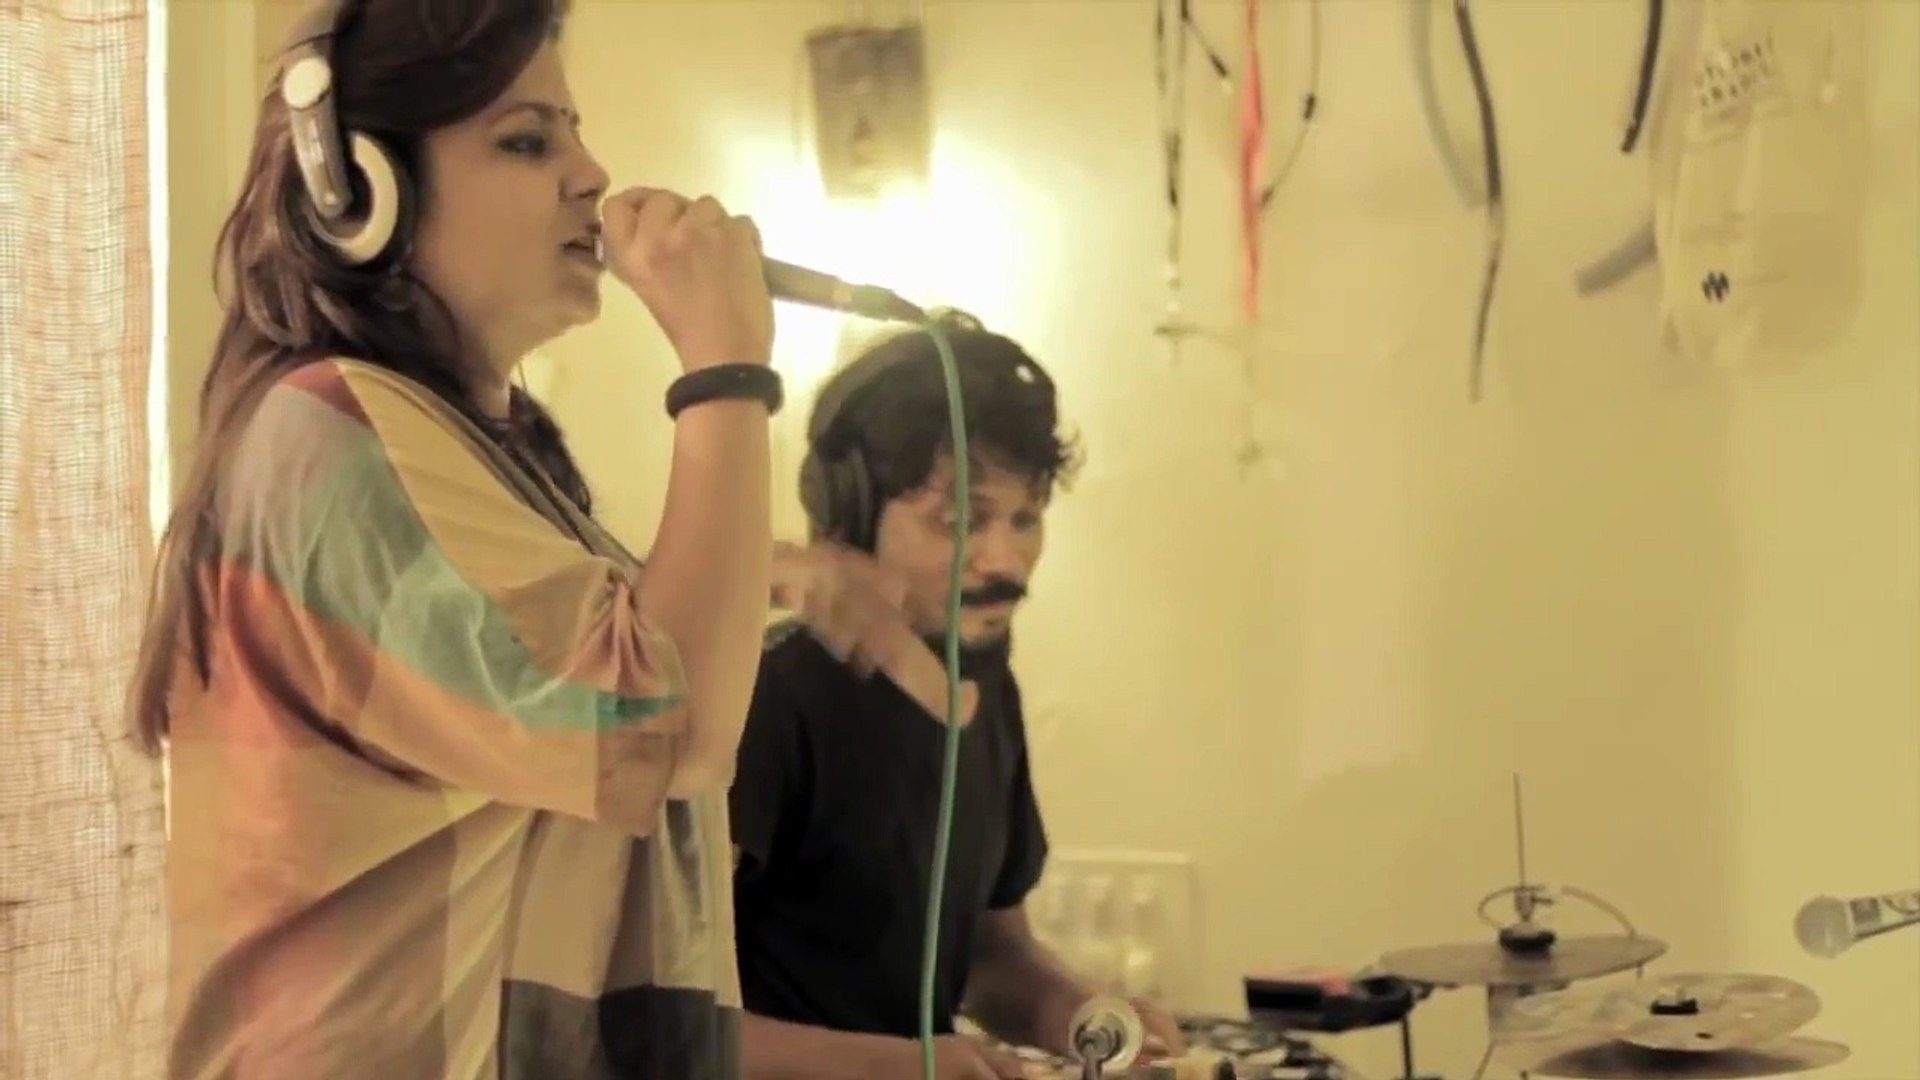 Pipe Grooves Thaalavattam & MC Kaur :: Treasure hunter :: Acoustic junk pipe bass synth